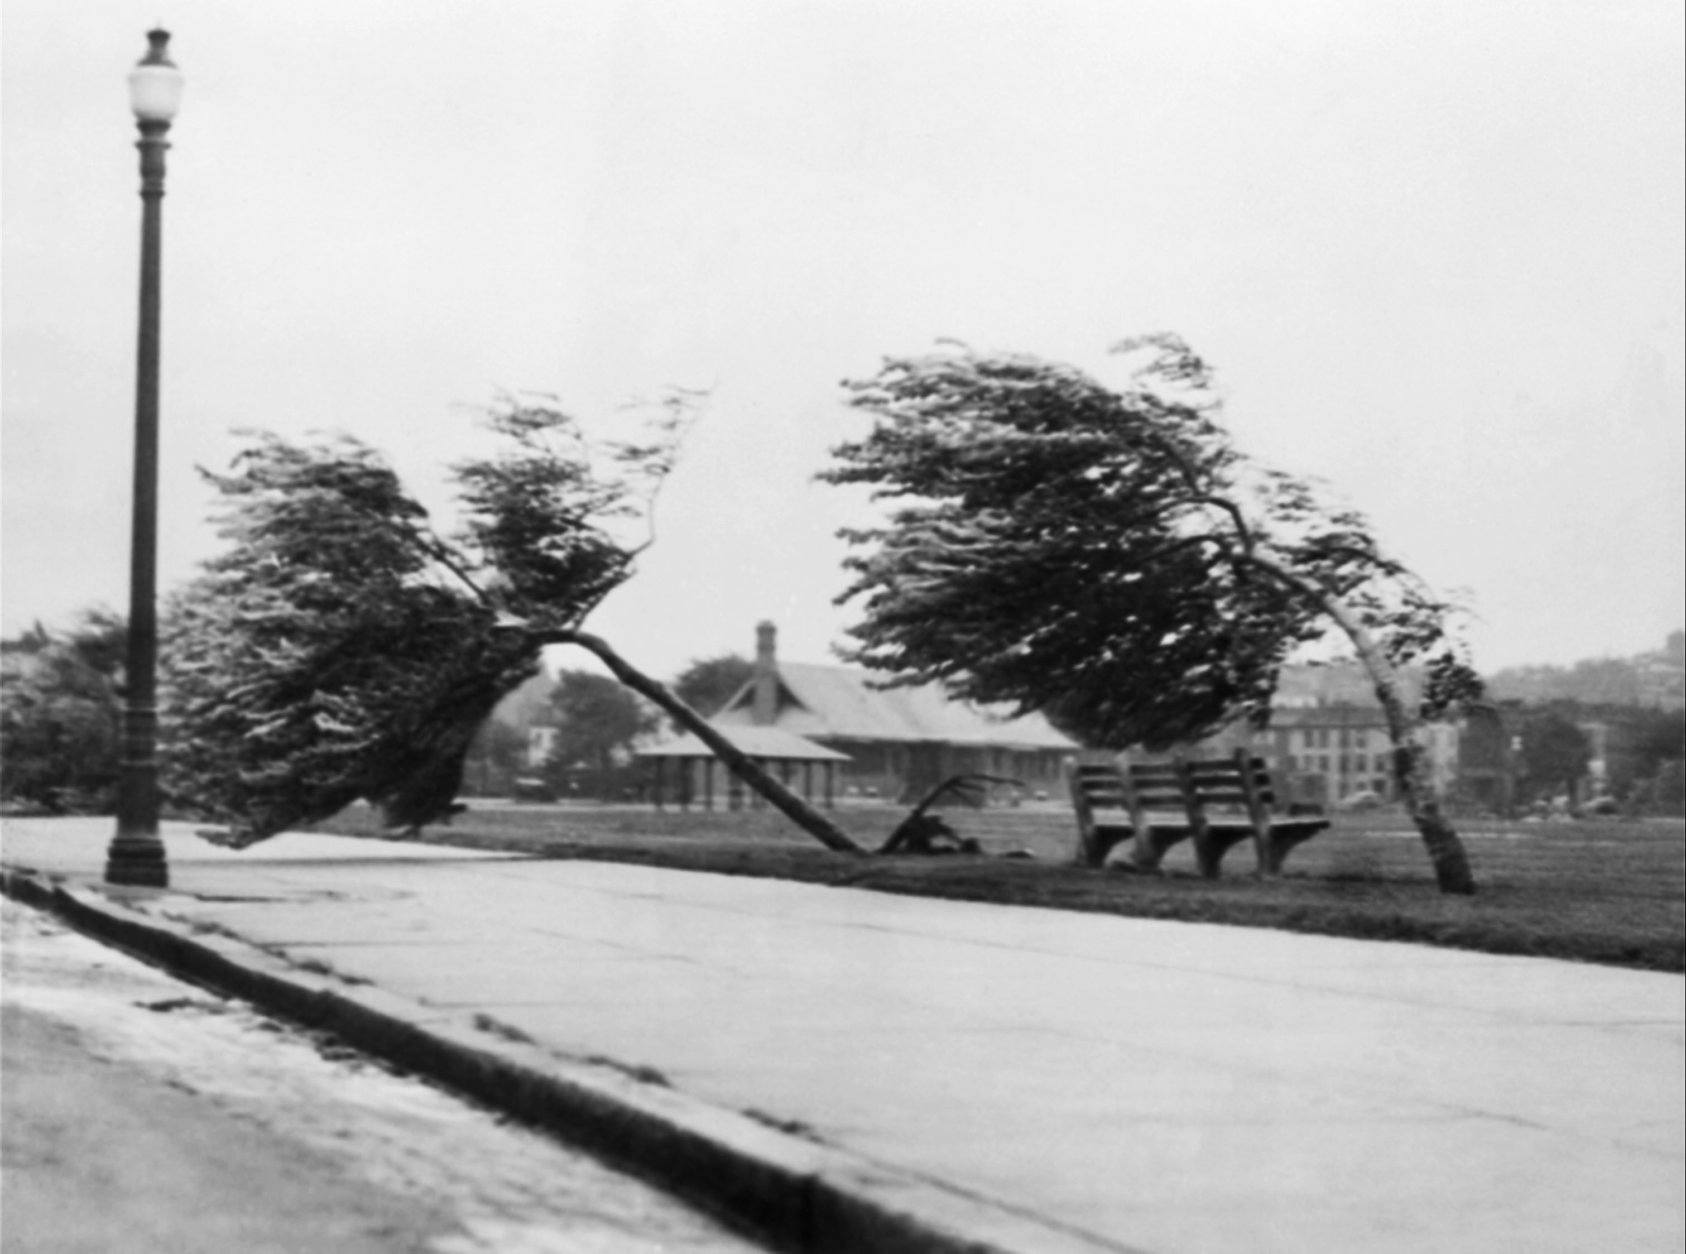 This Sep. 21, 1938 photo shows the Strandway in South Boston with 100-mile-an-hour hurricane winds which struck New England hard. It's been nearly 73 years since the Great New England Hurricane of 1938 _ one of the most powerful, destructive storms ever to hit southern New England, as another massive storm bears down. (AP Photo)